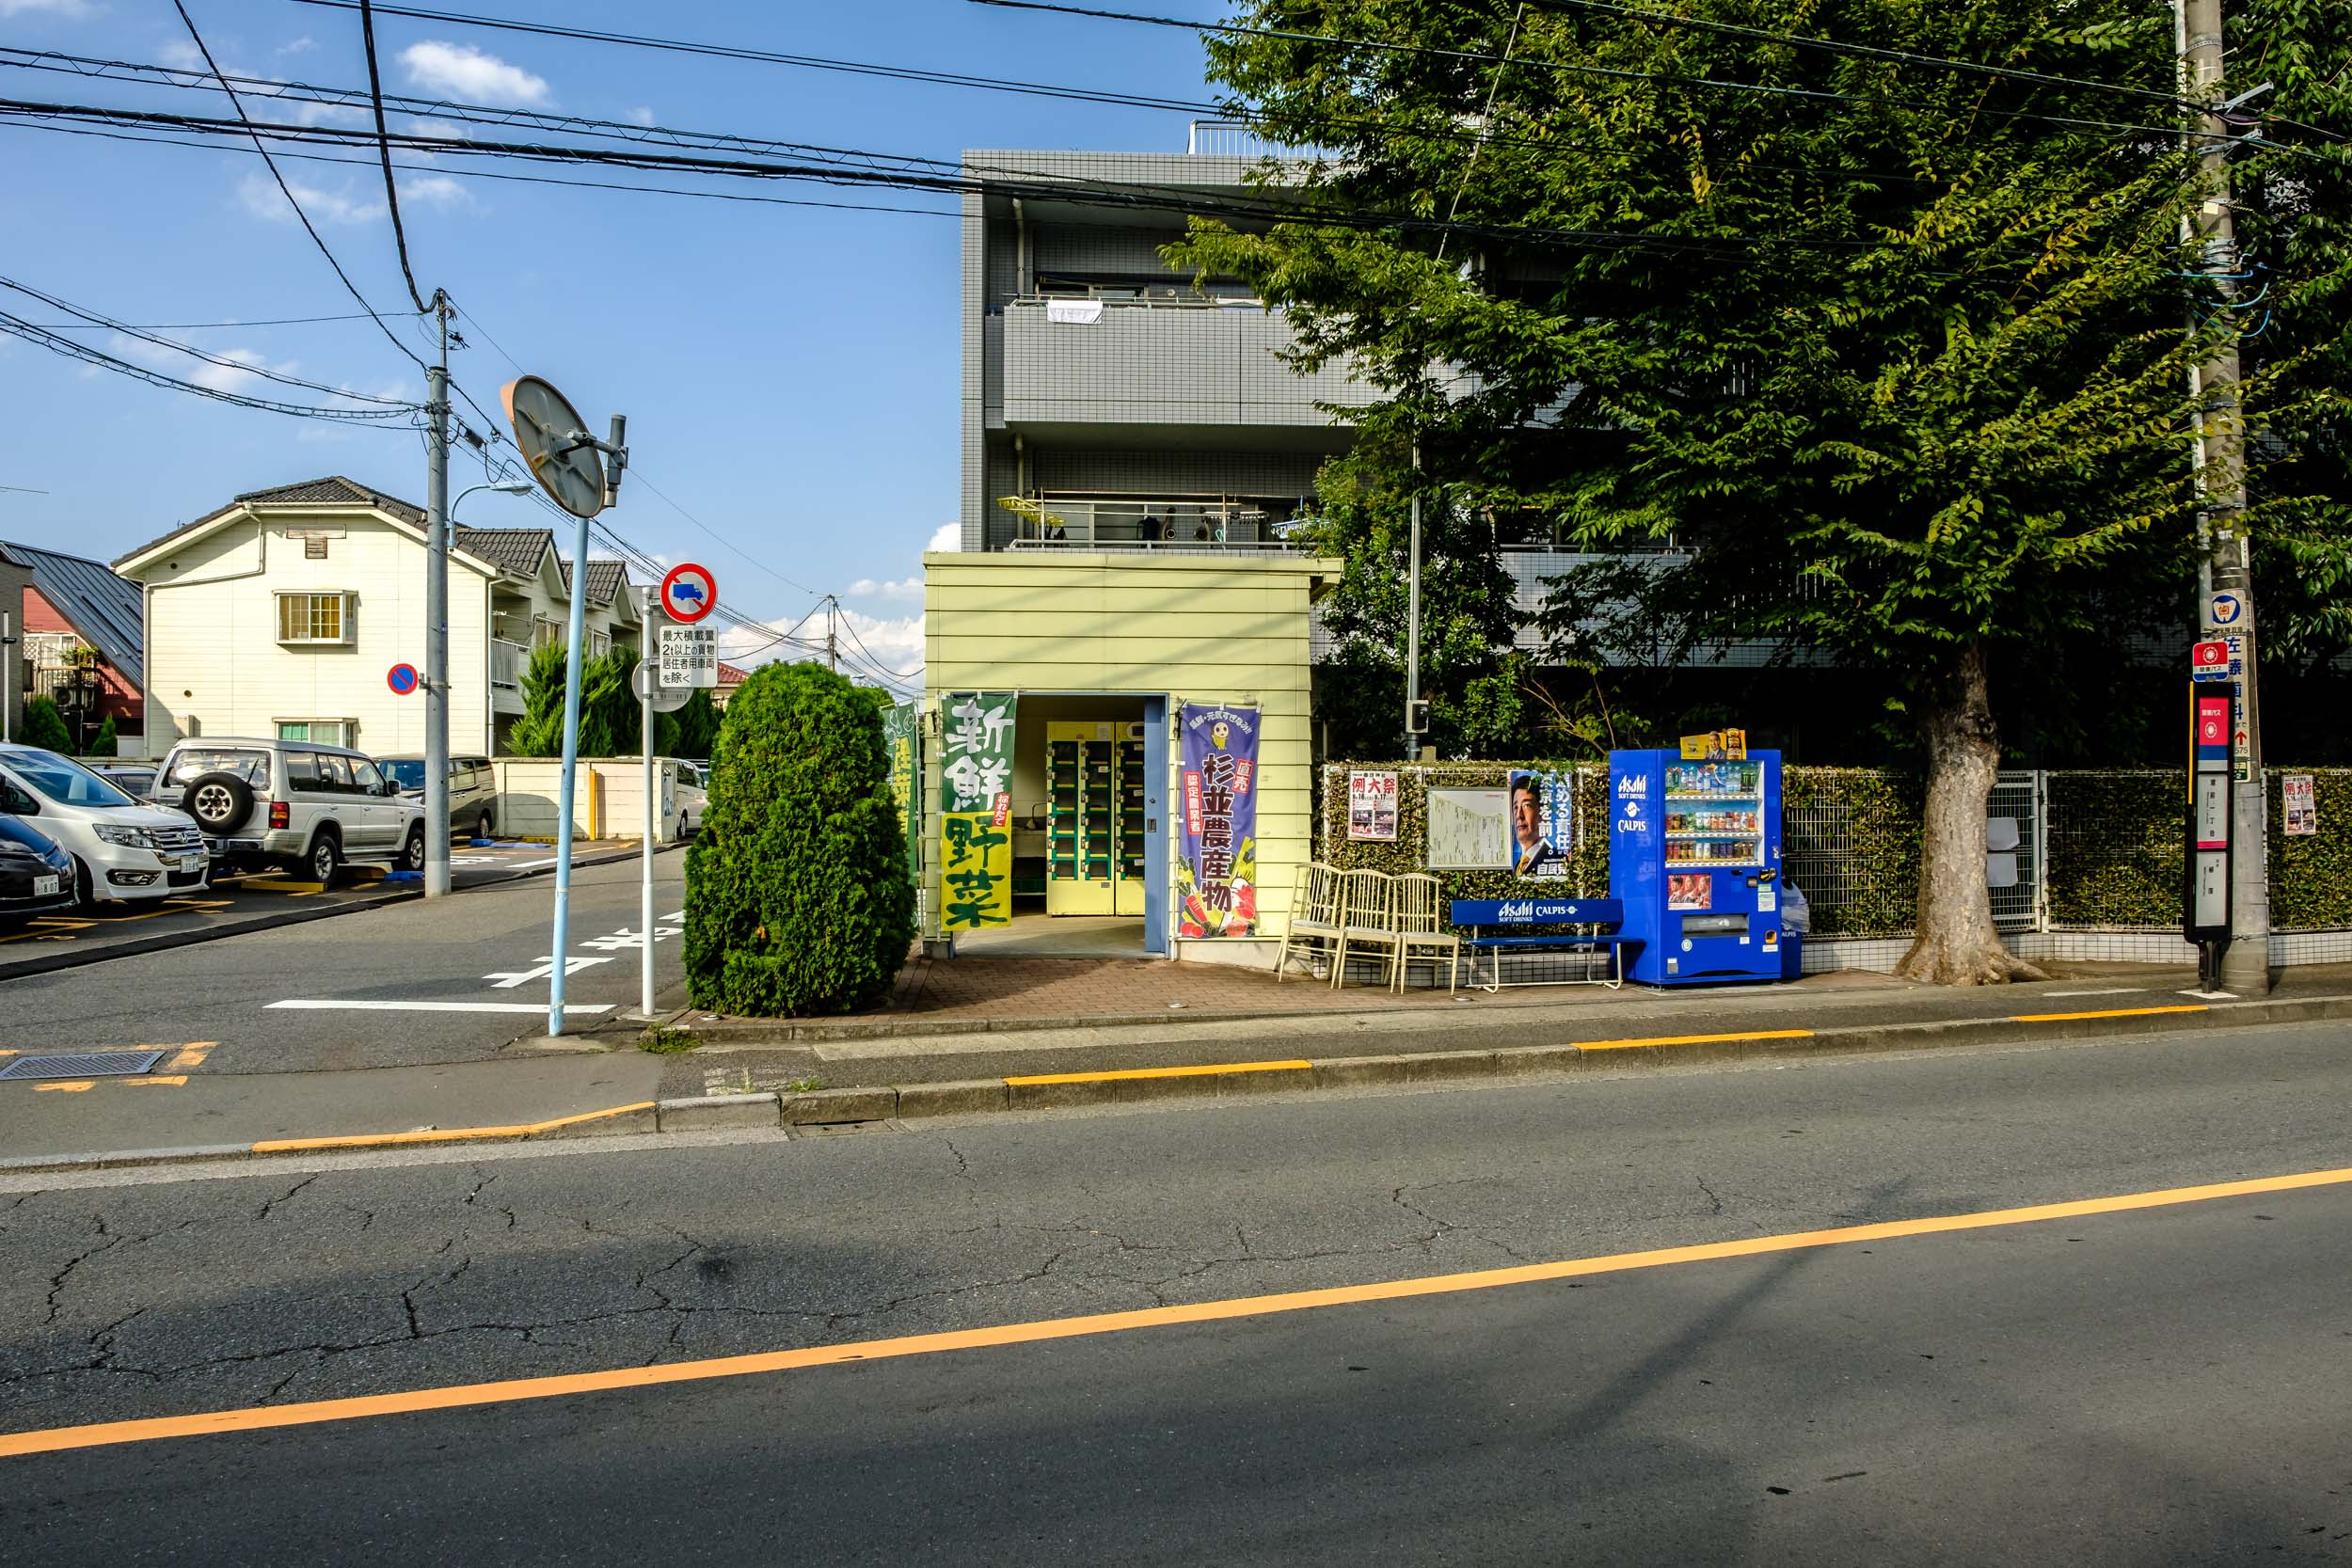 This shop with no staff is near Takaido station in Suginami ward